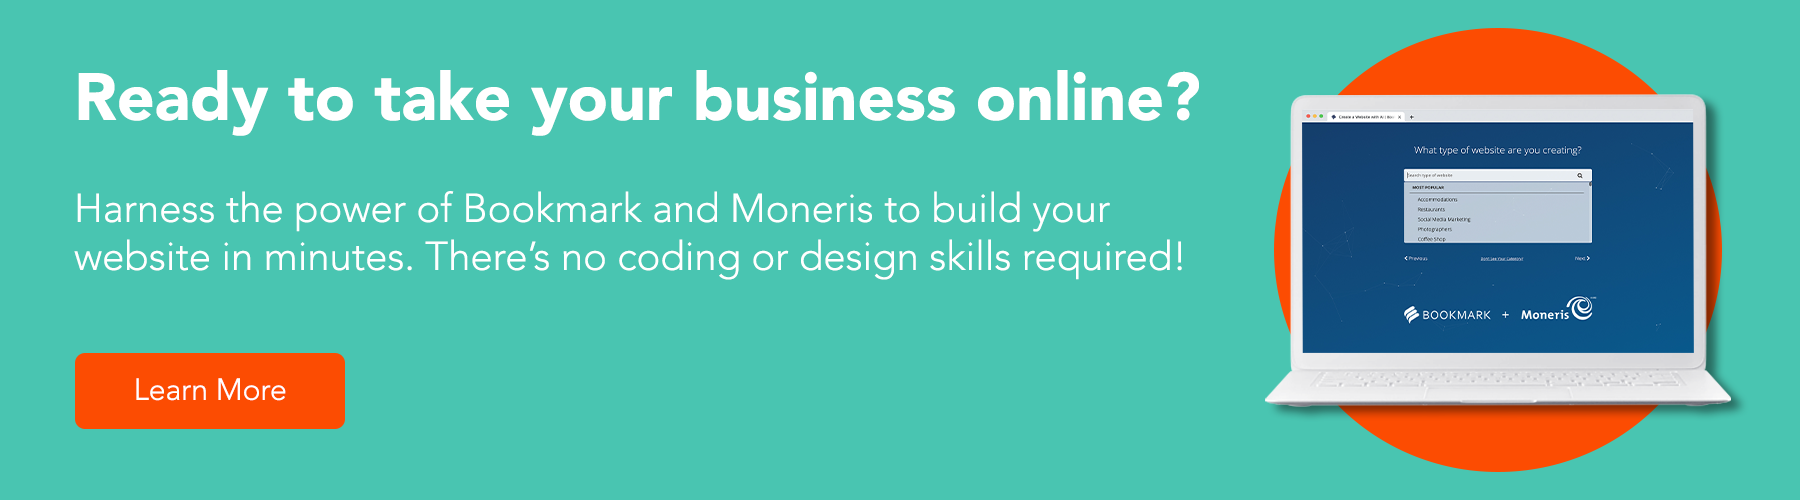 Ready to take your business online?  Harness the power of Bookmark and Moneris to build your website in minutes. There's no coding or design skills required! Learn More.